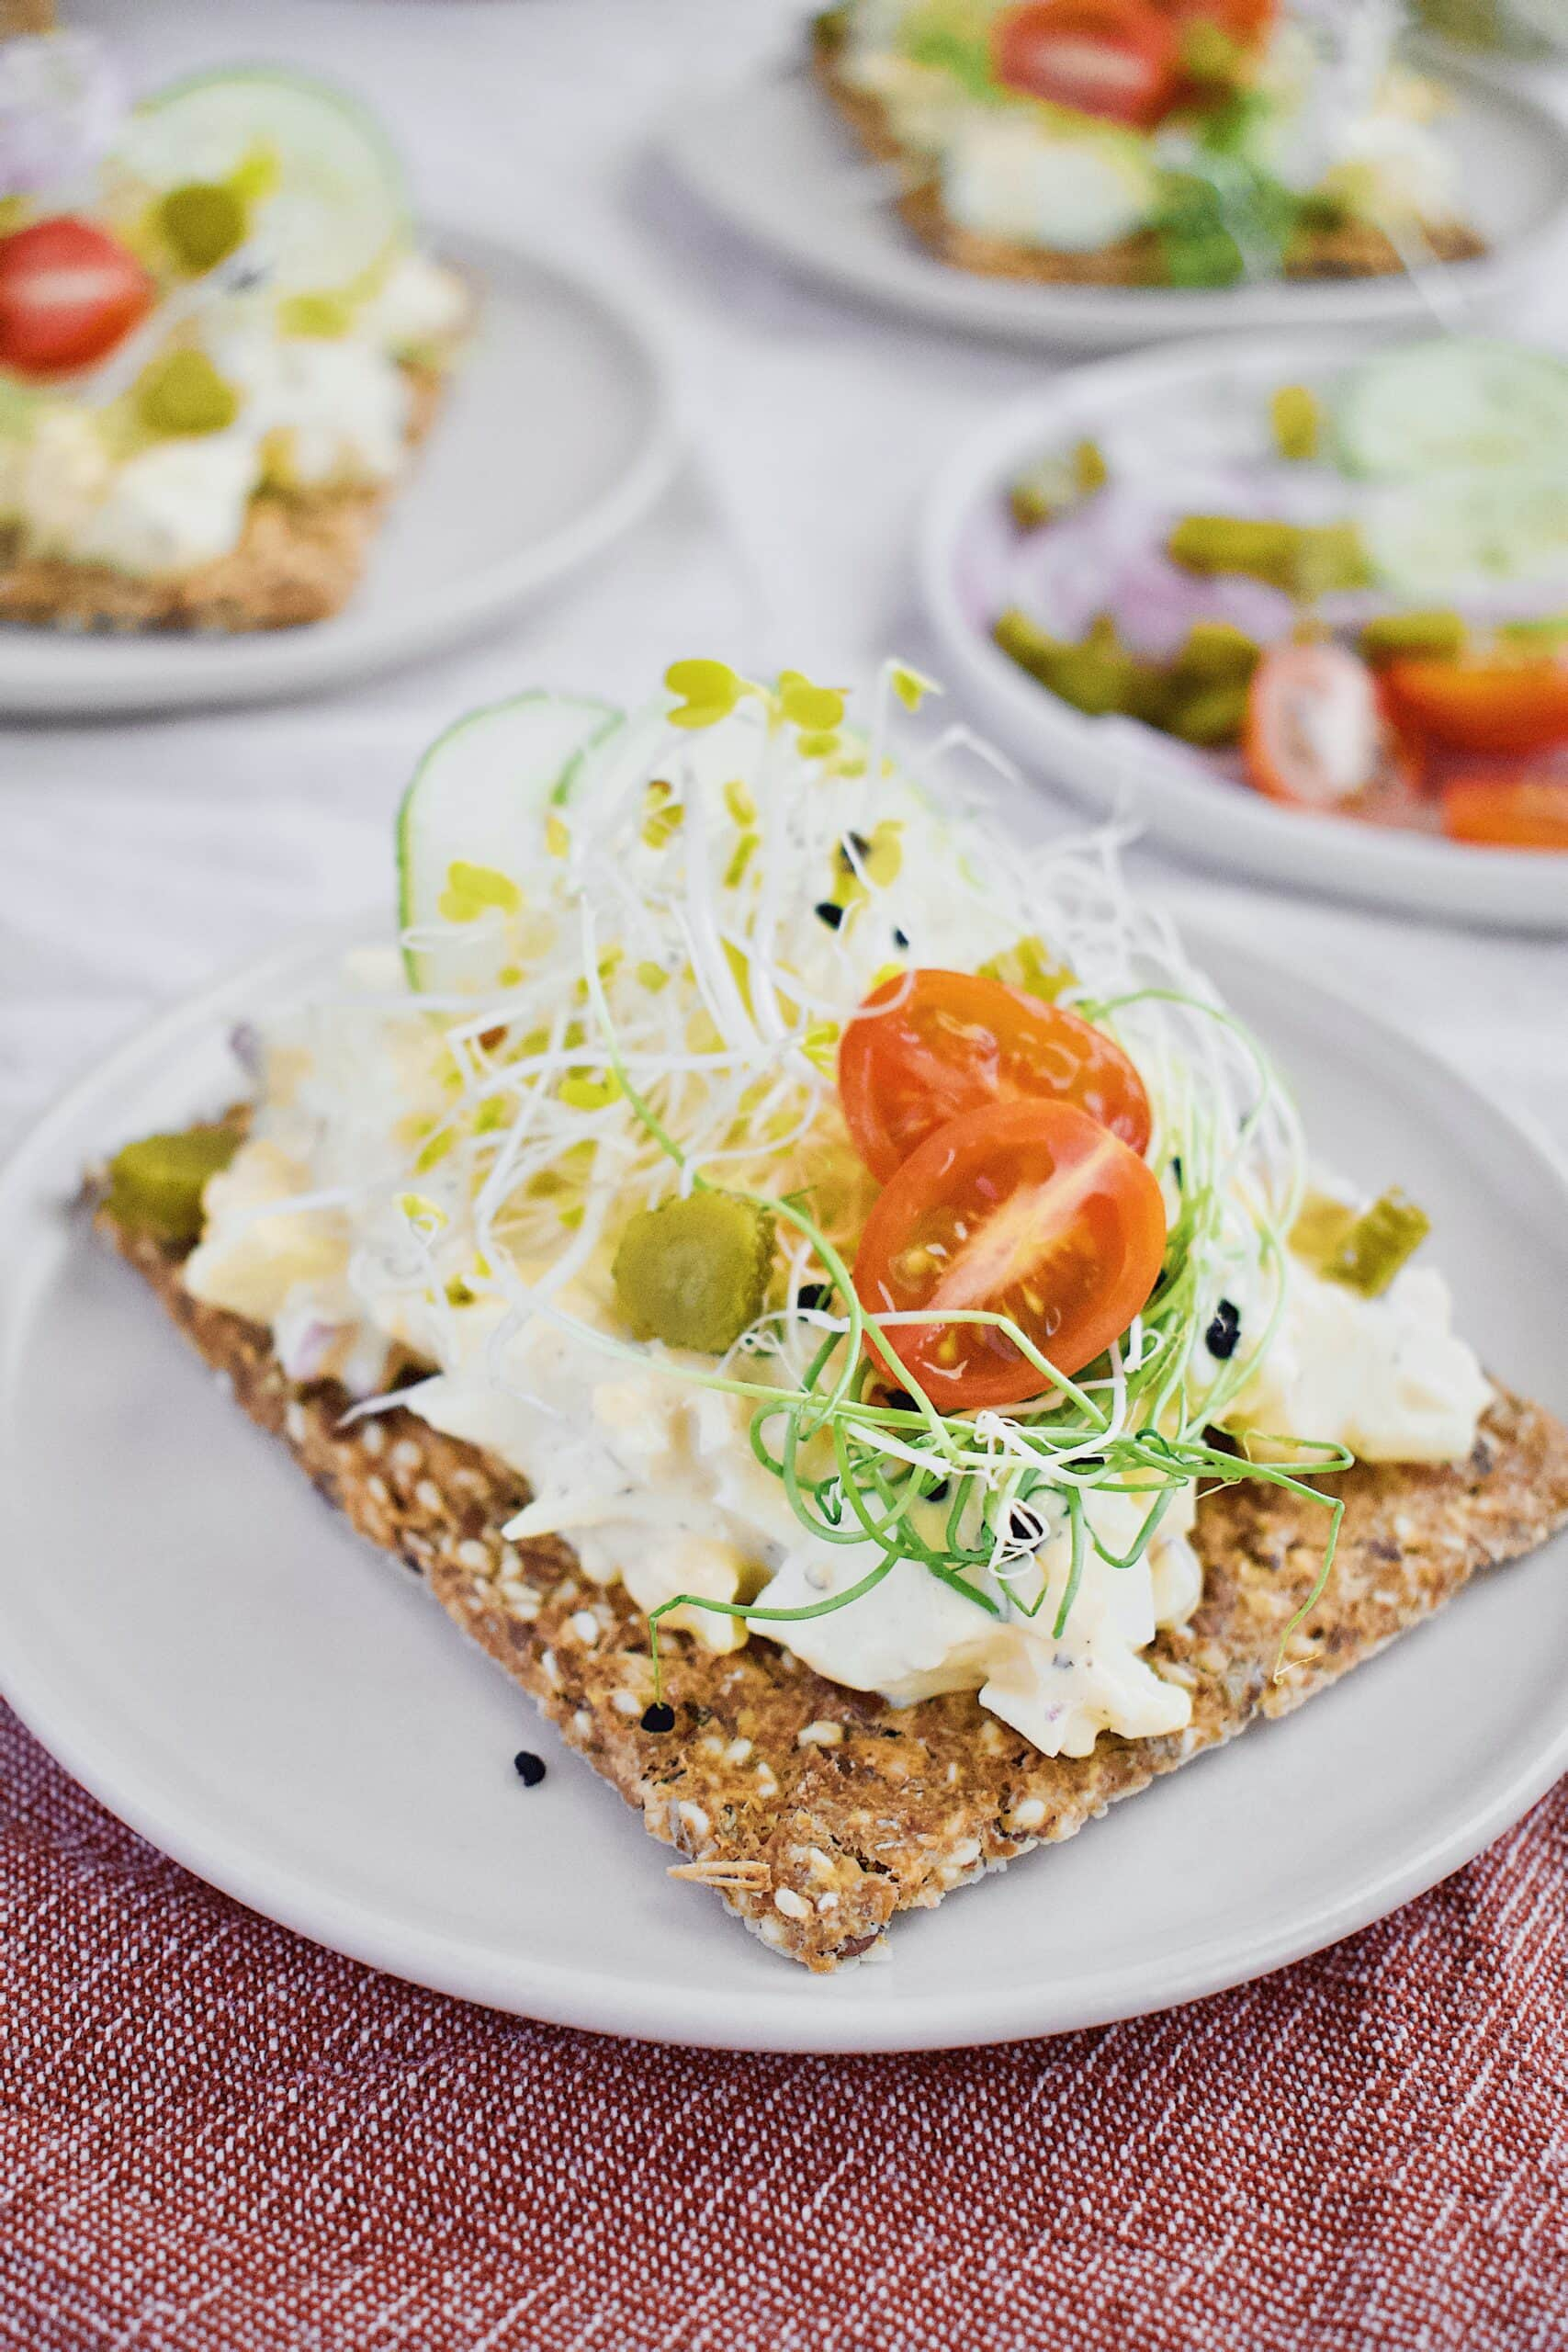 Nordic Egg Salad ready to eat